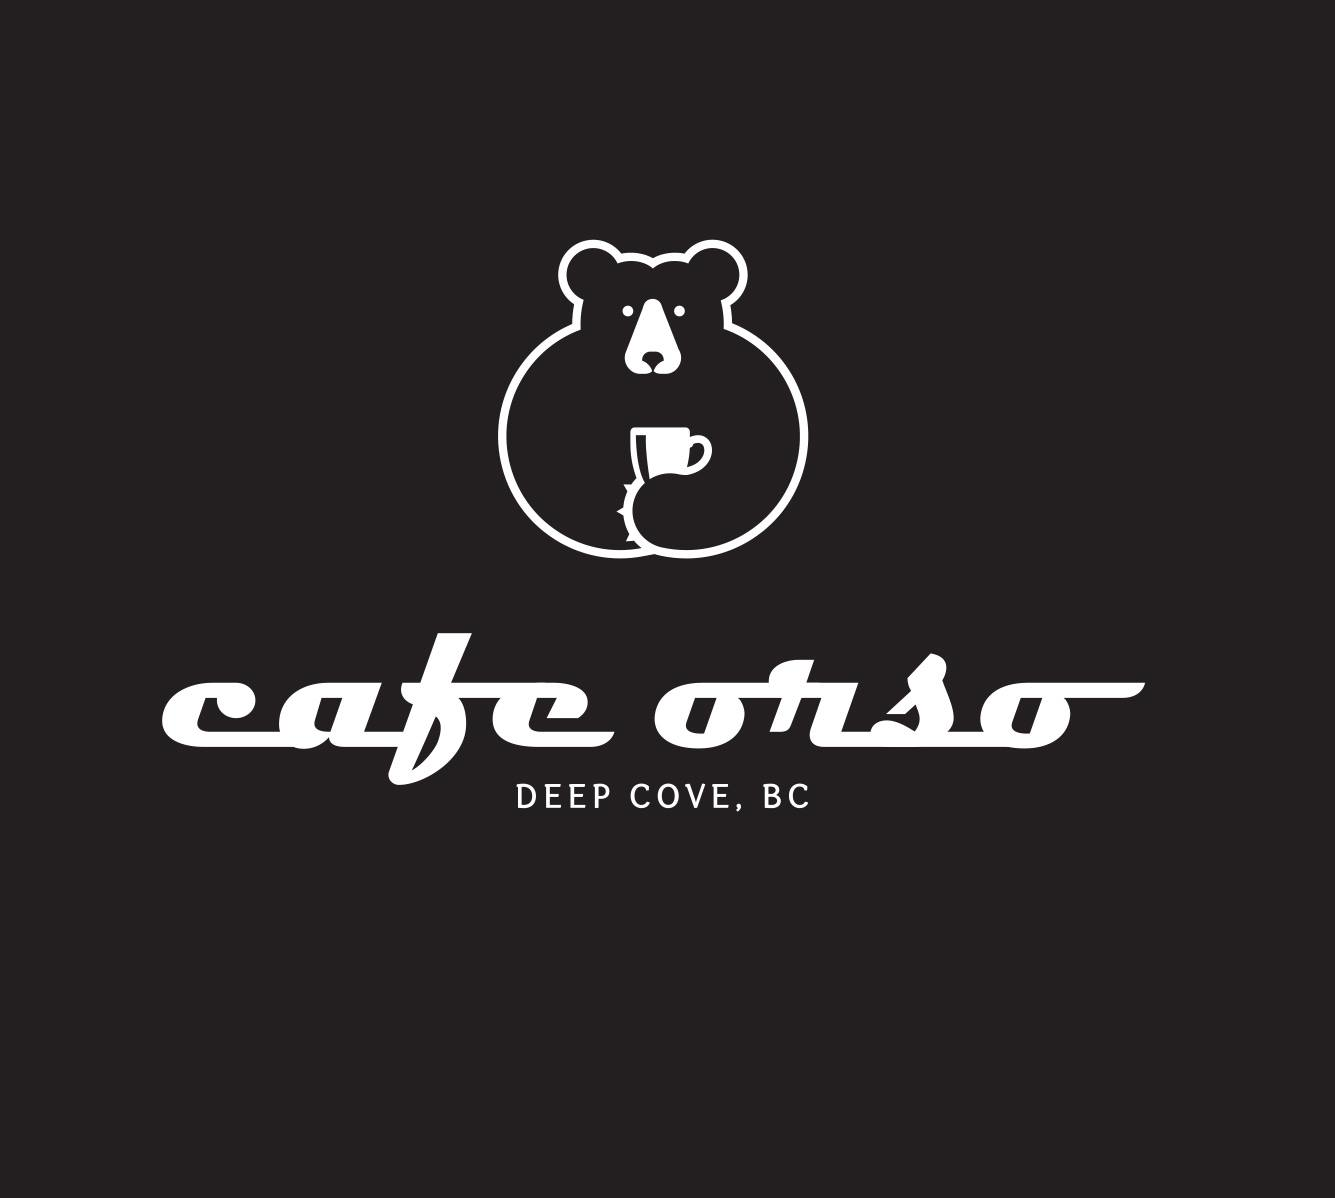 Caf orso employment opportunities seycove work experience we are looking for part time kitchen staff to work 1 2 shifts a week in our independently owned licensed coffee house in deep cove north vancouver malvernweather Image collections